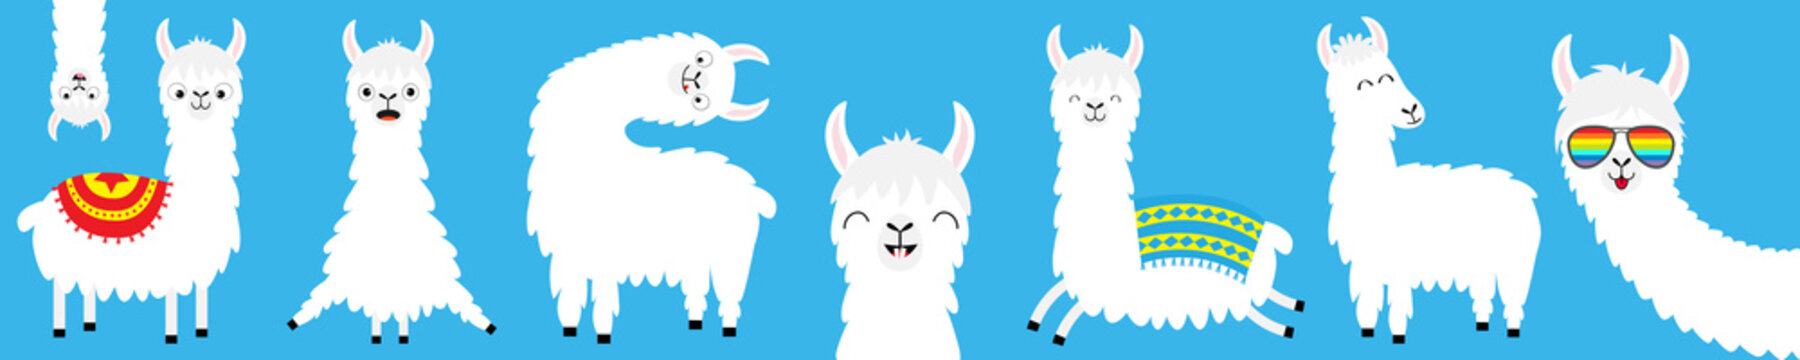 Llama alpaca big line set. Face glassess. Baby collection. Cute cartoon kawaii funny character. Fluffy hair fur. T-shirt, greeting card, poster template print. Flat design. Blue background.